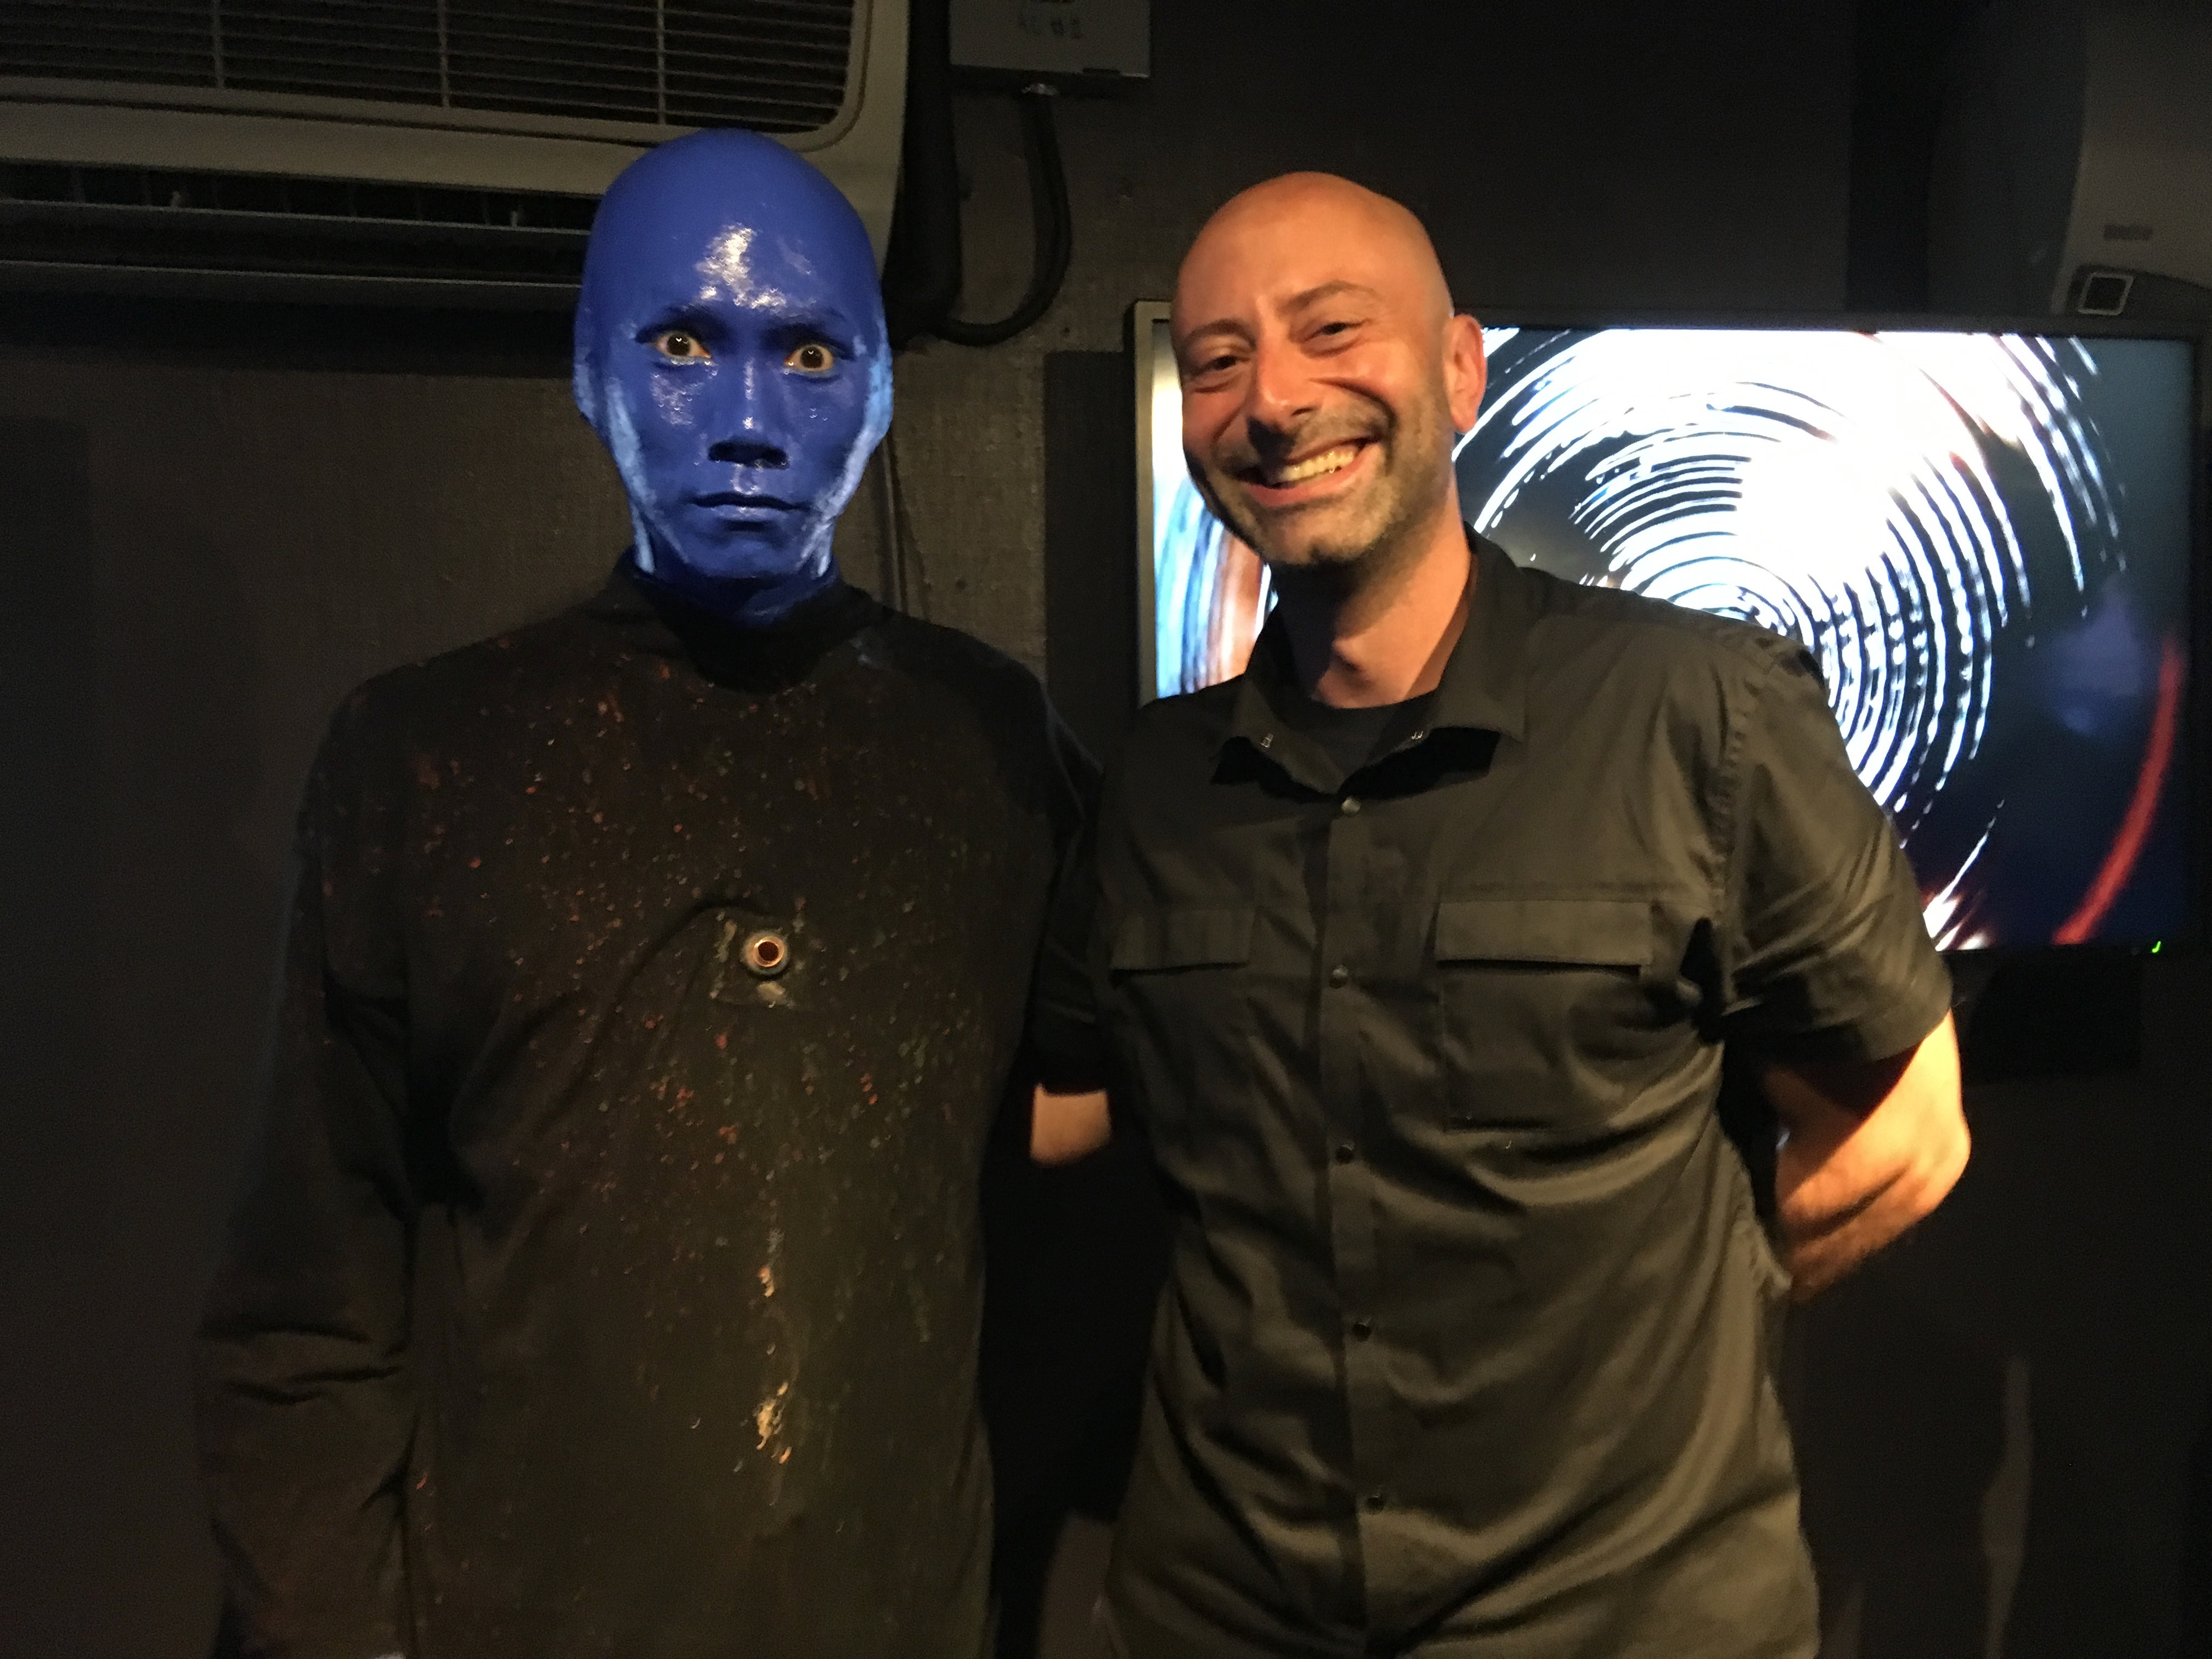 Me with a Blue Man